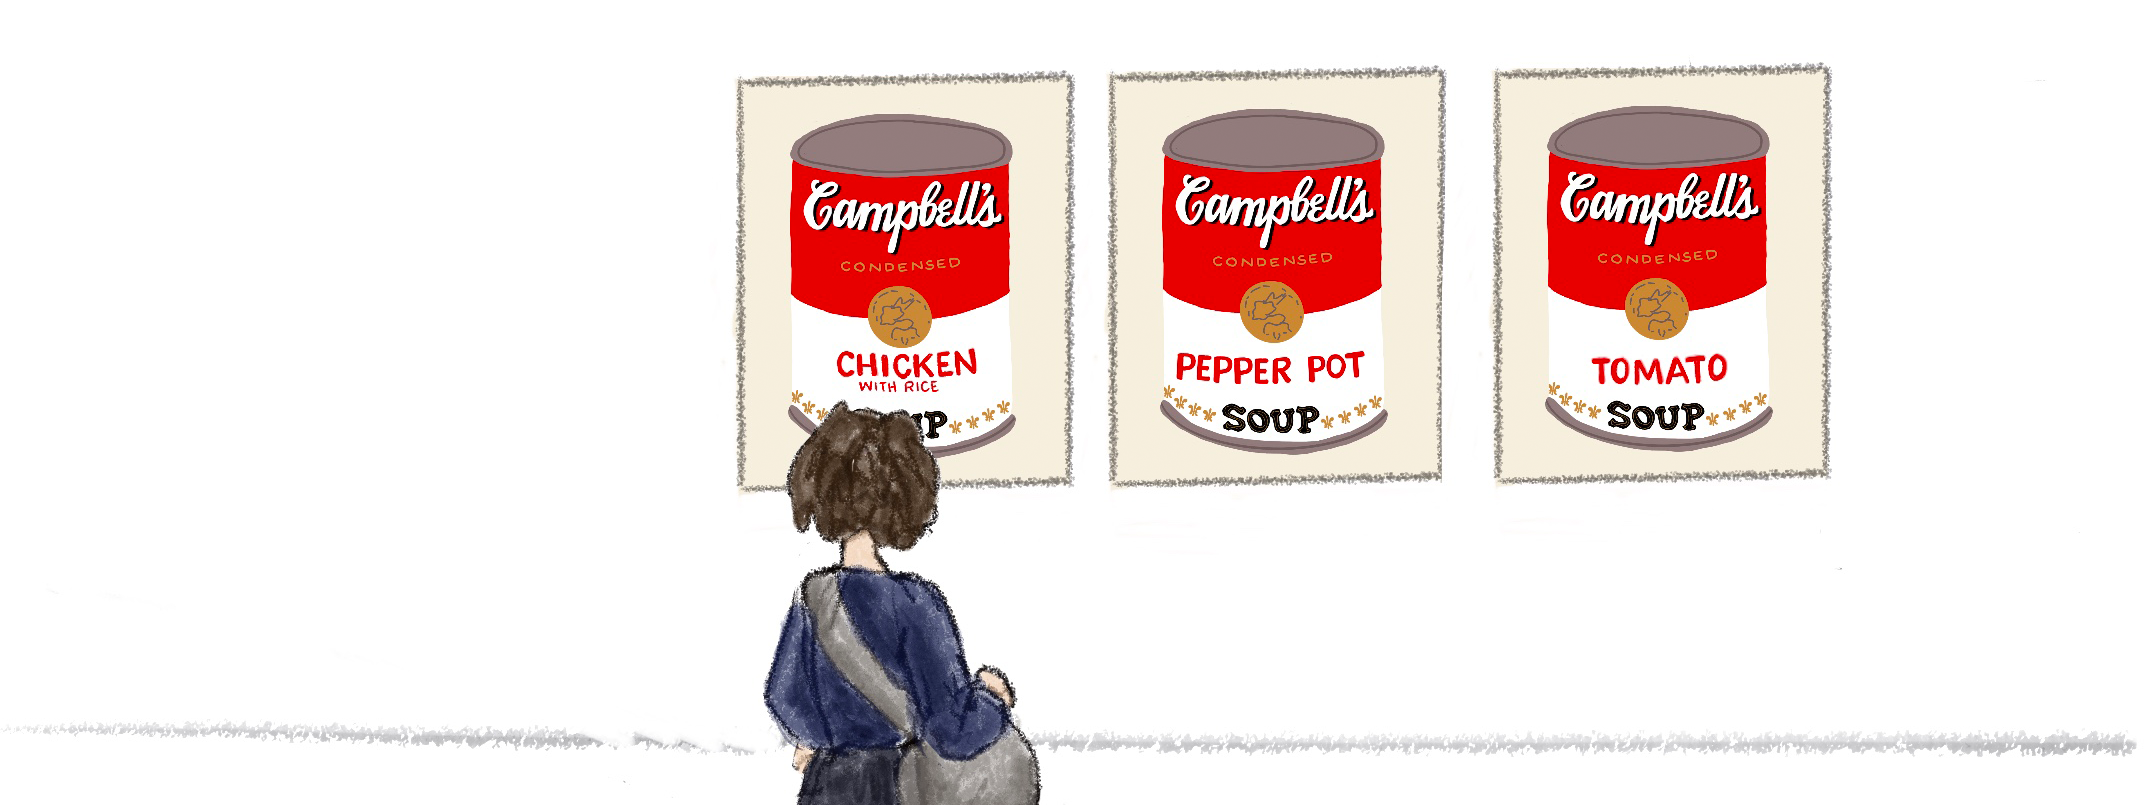 Campbells soup illustration